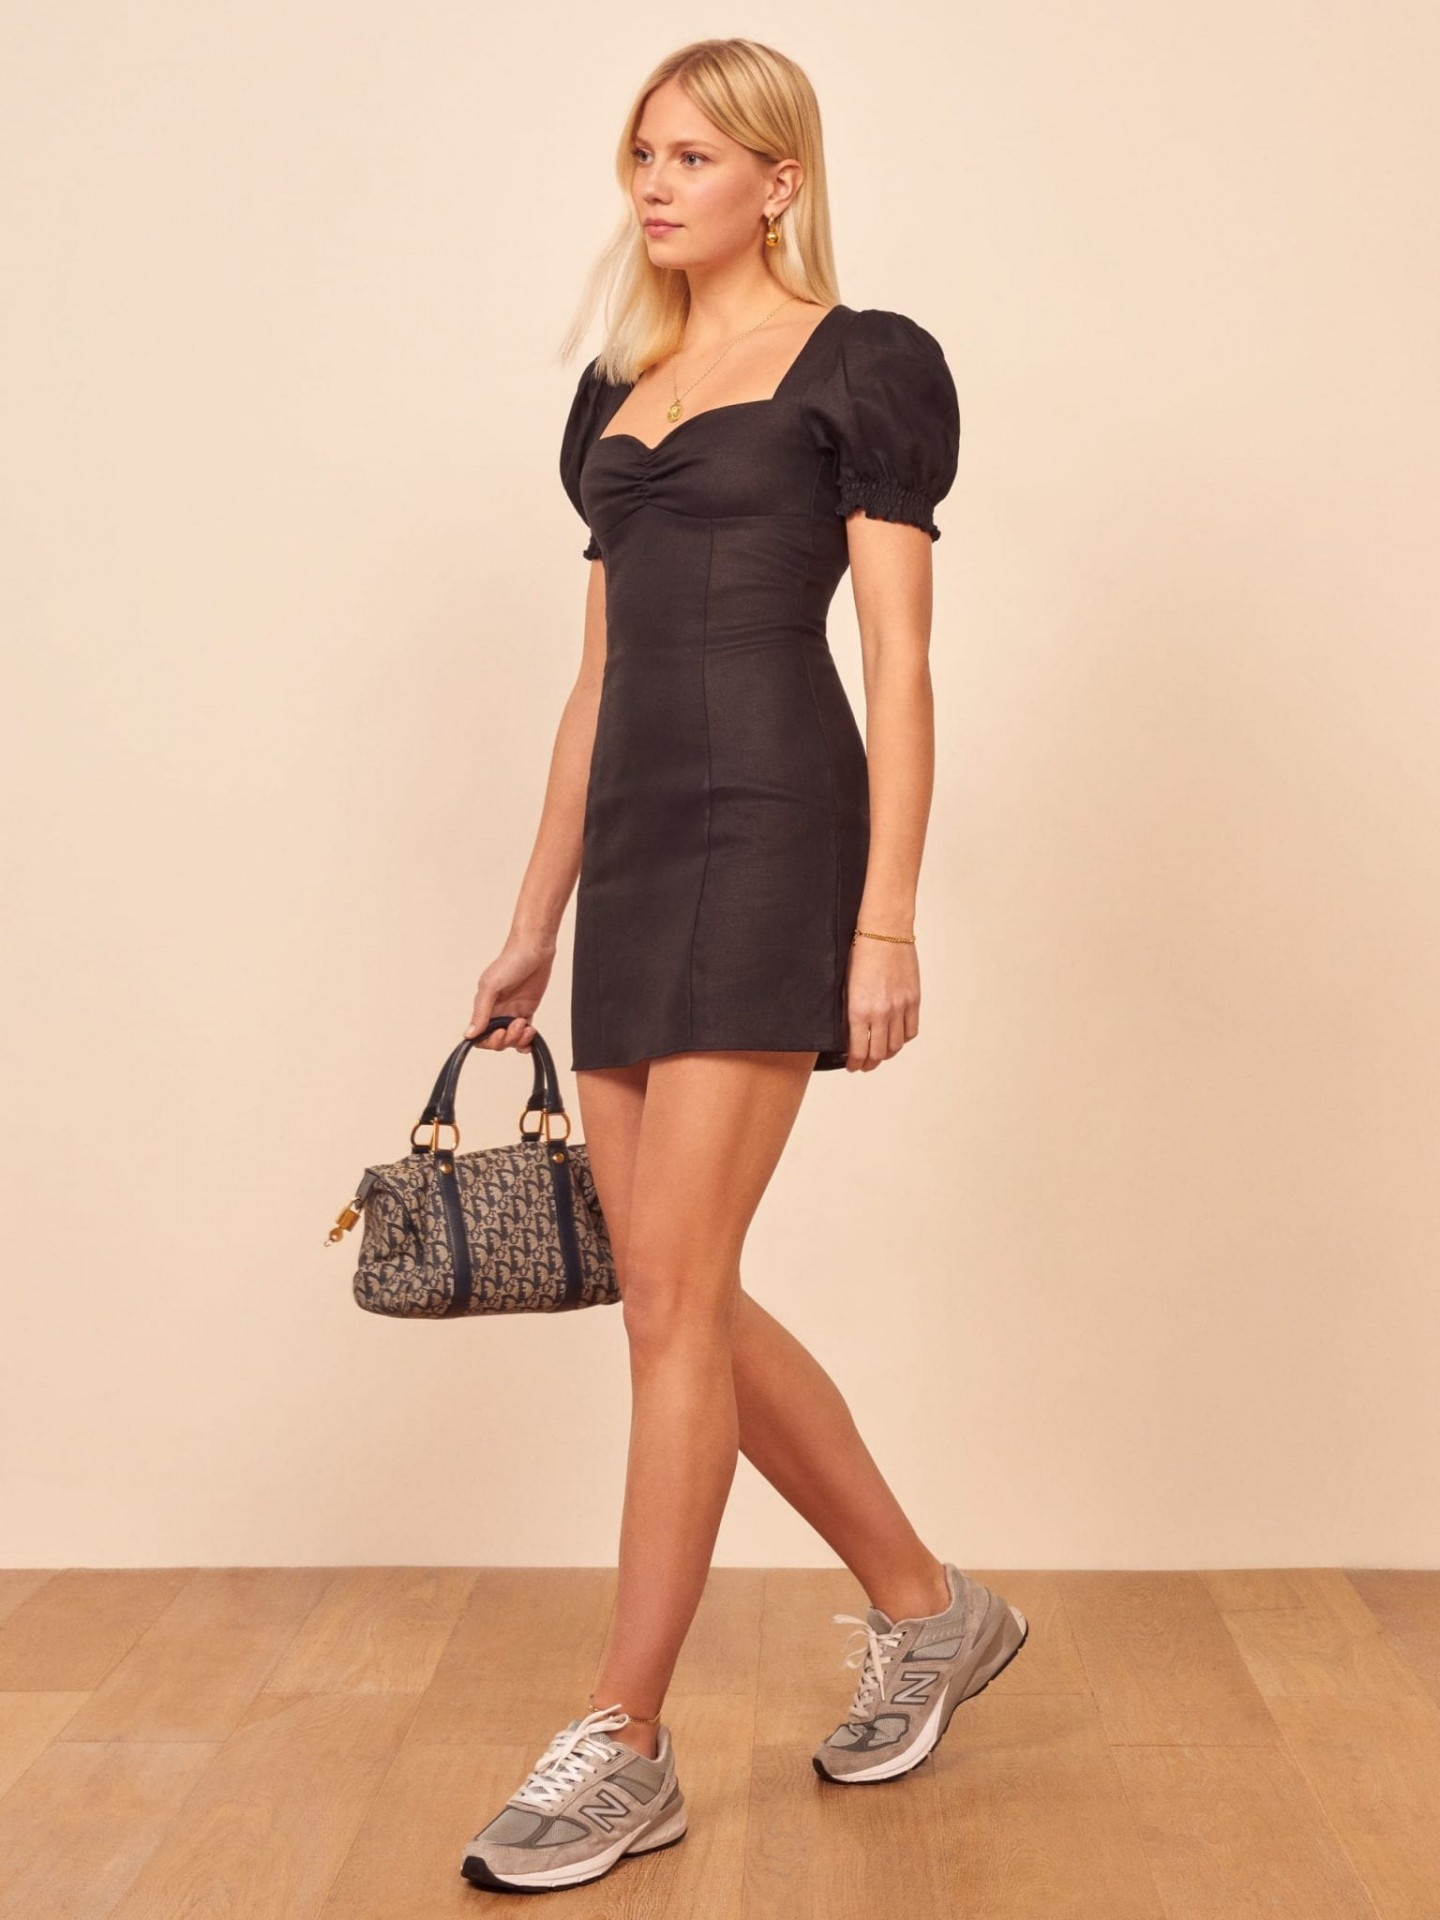 THE REFORMATION Gina Dress